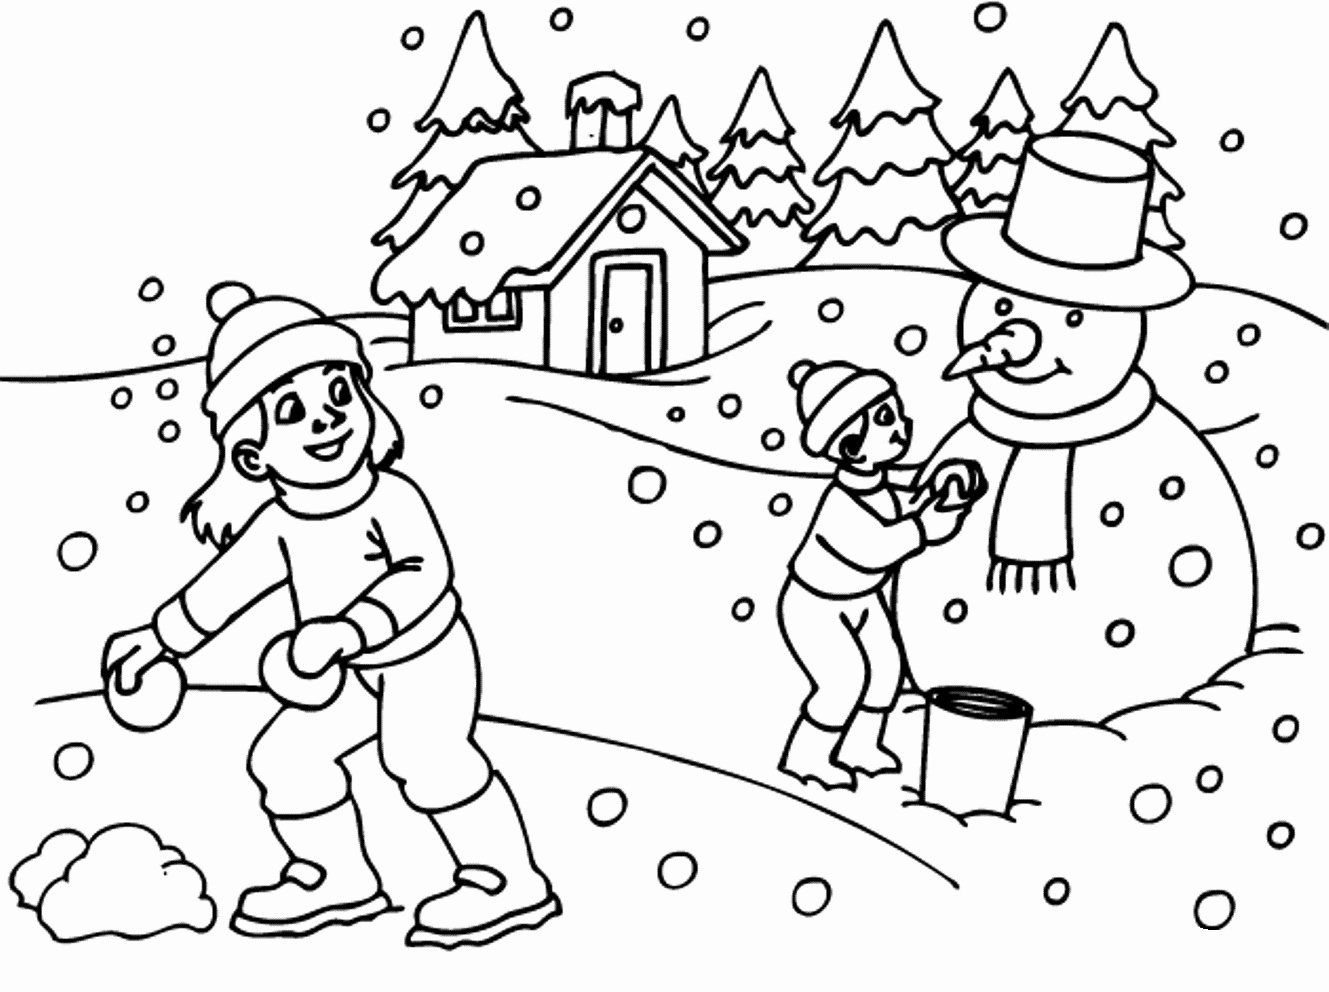 Coloring Pages For Kids Spring Lovely Coloring Book Happy Birthday Coloring Pages Easy Mandal In 2020 Coloring Pages Winter Summer Coloring Pages Spring Coloring Pages